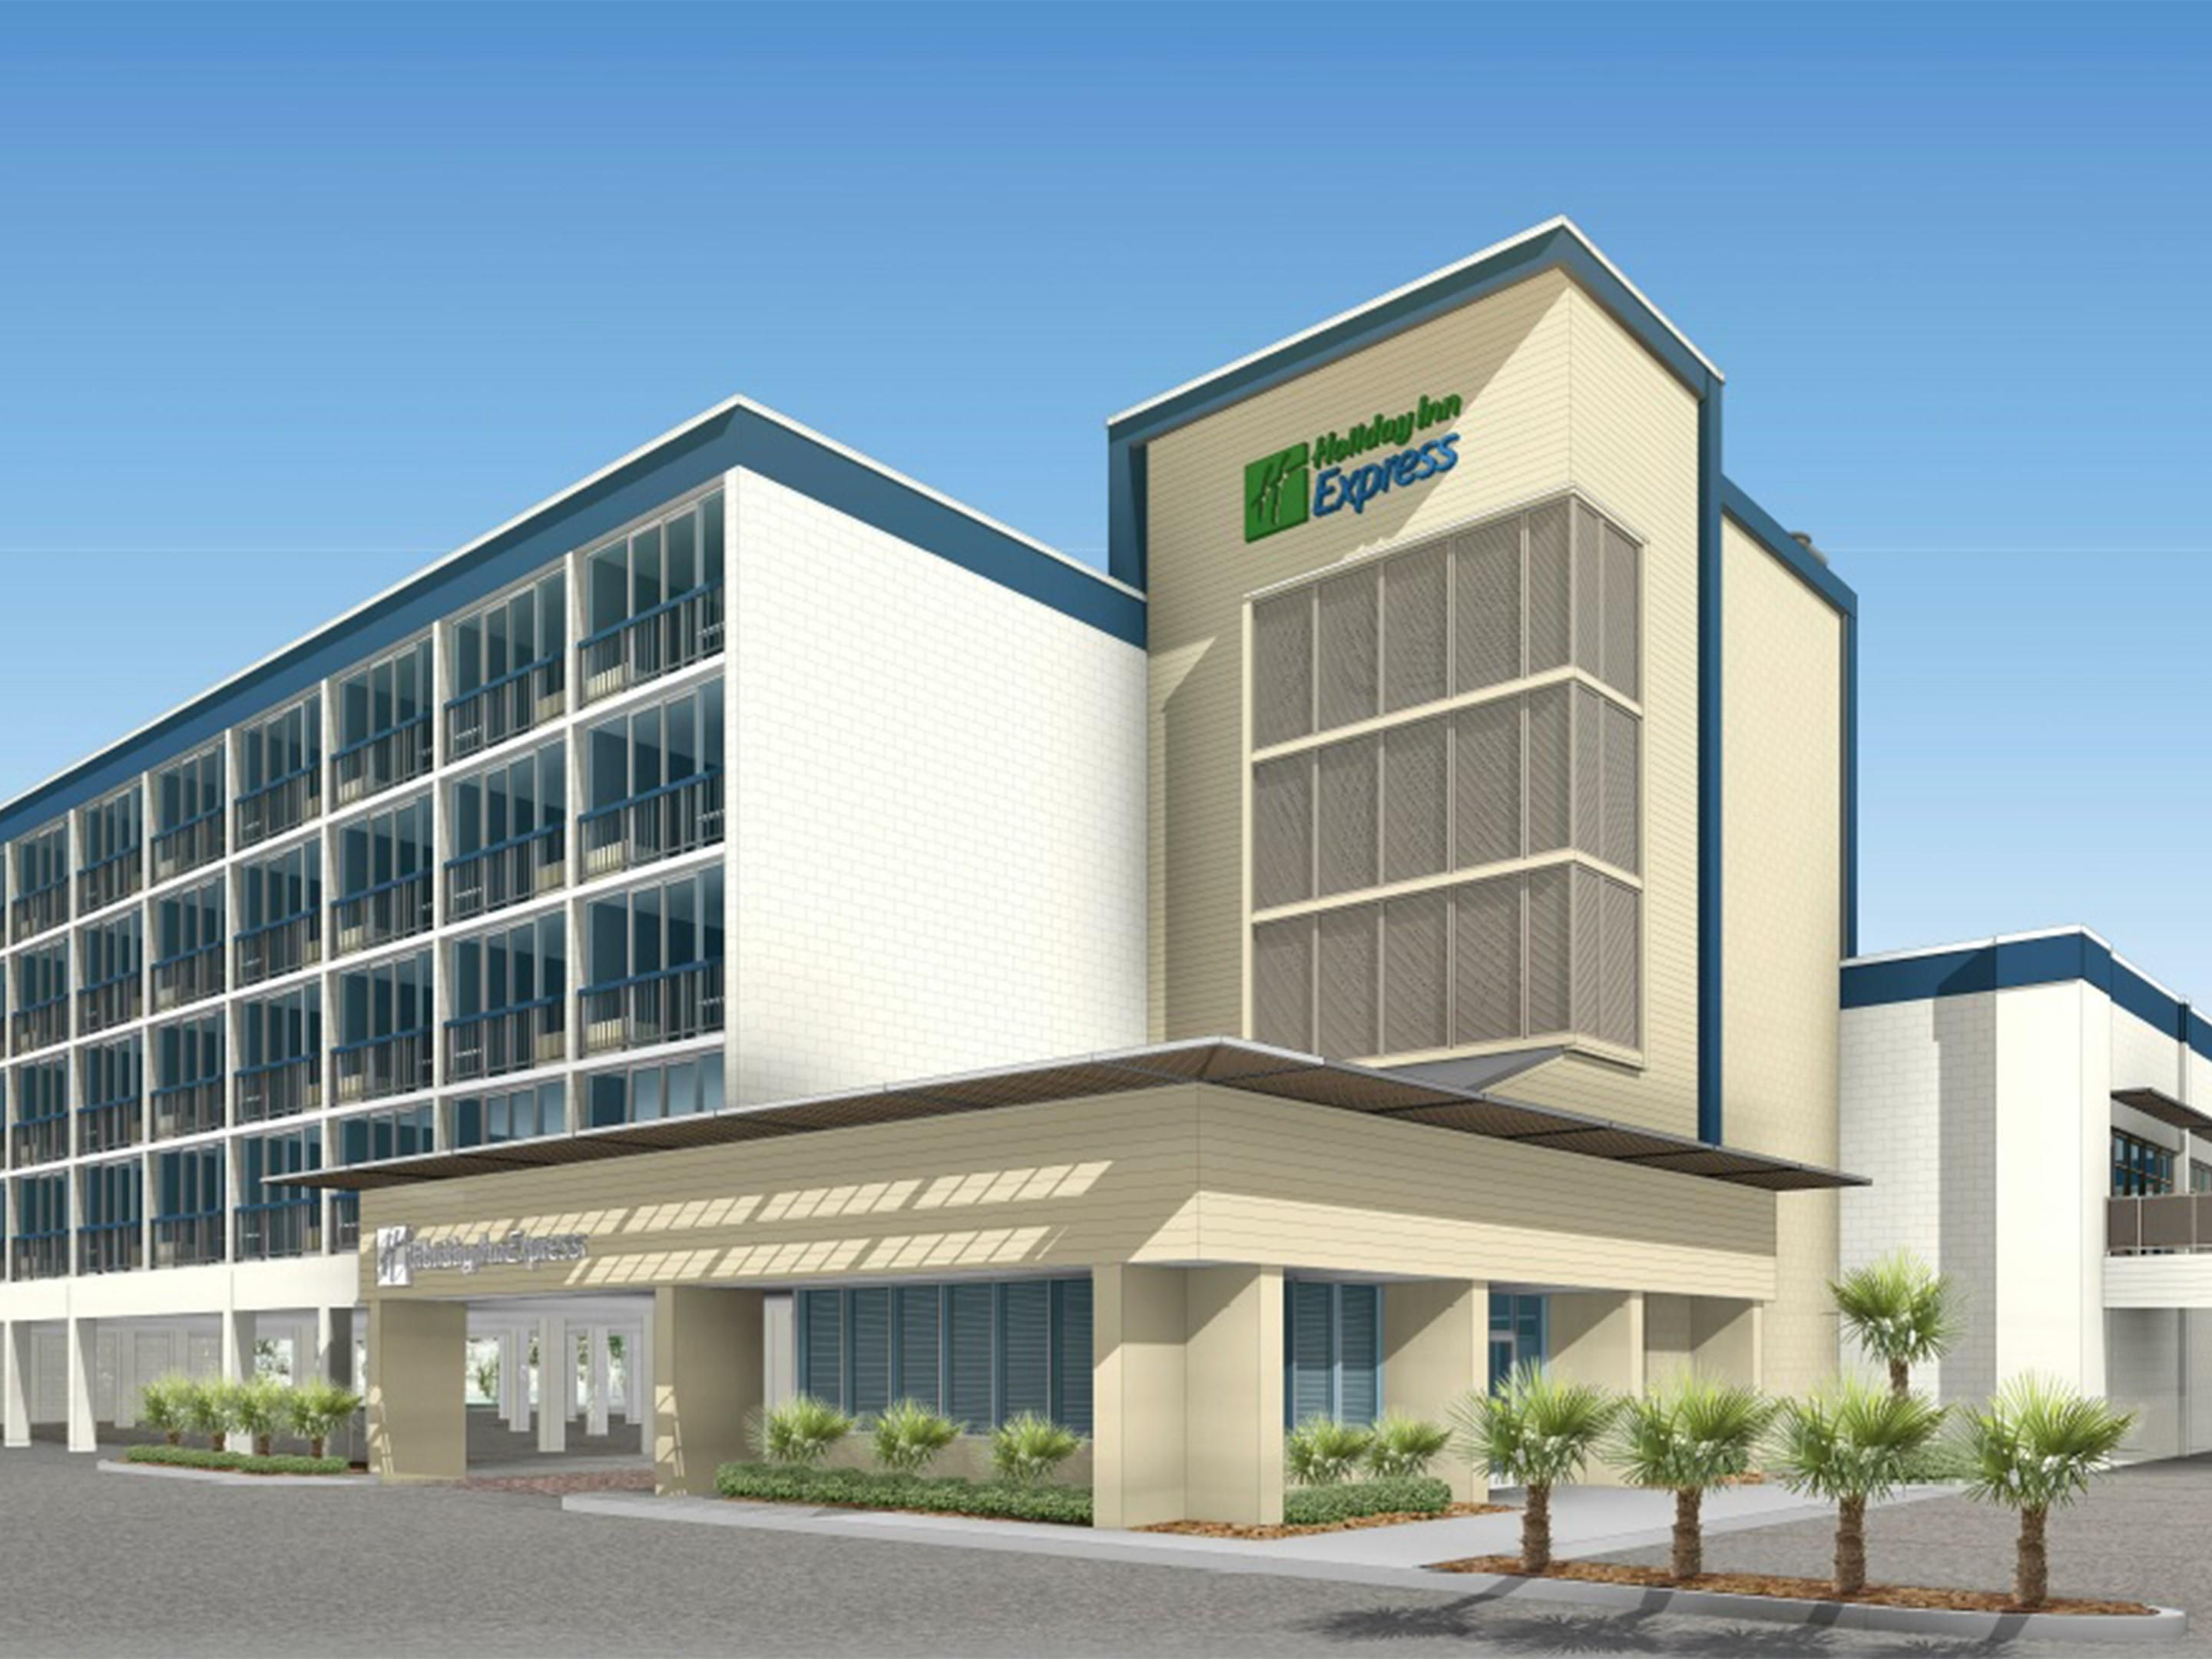 Holiday Inn Express Hotel in Nags Head, NC - HIE Oceanfront